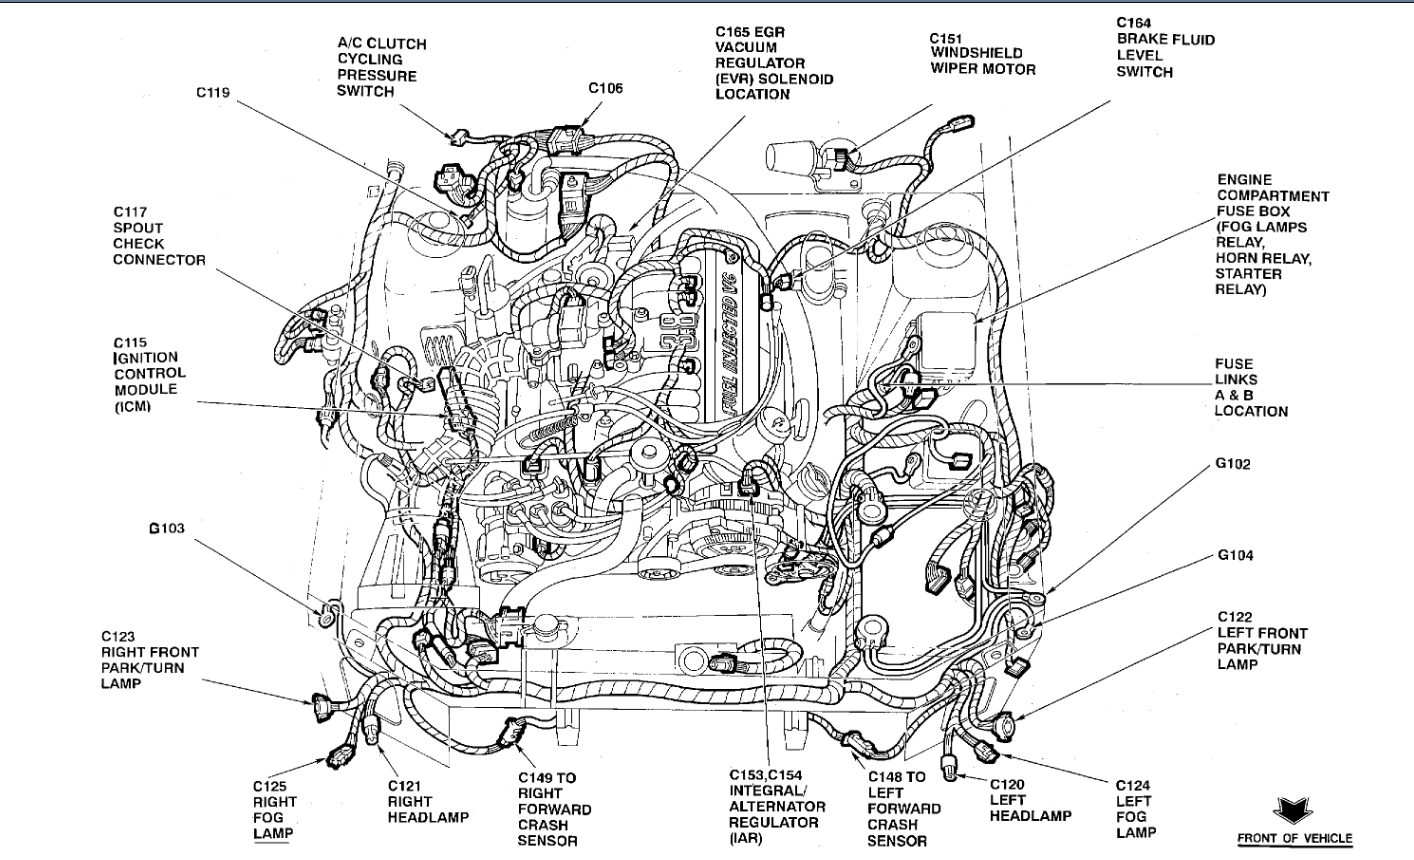 Ignition Module: I Bought the Car Not Knowing What Was